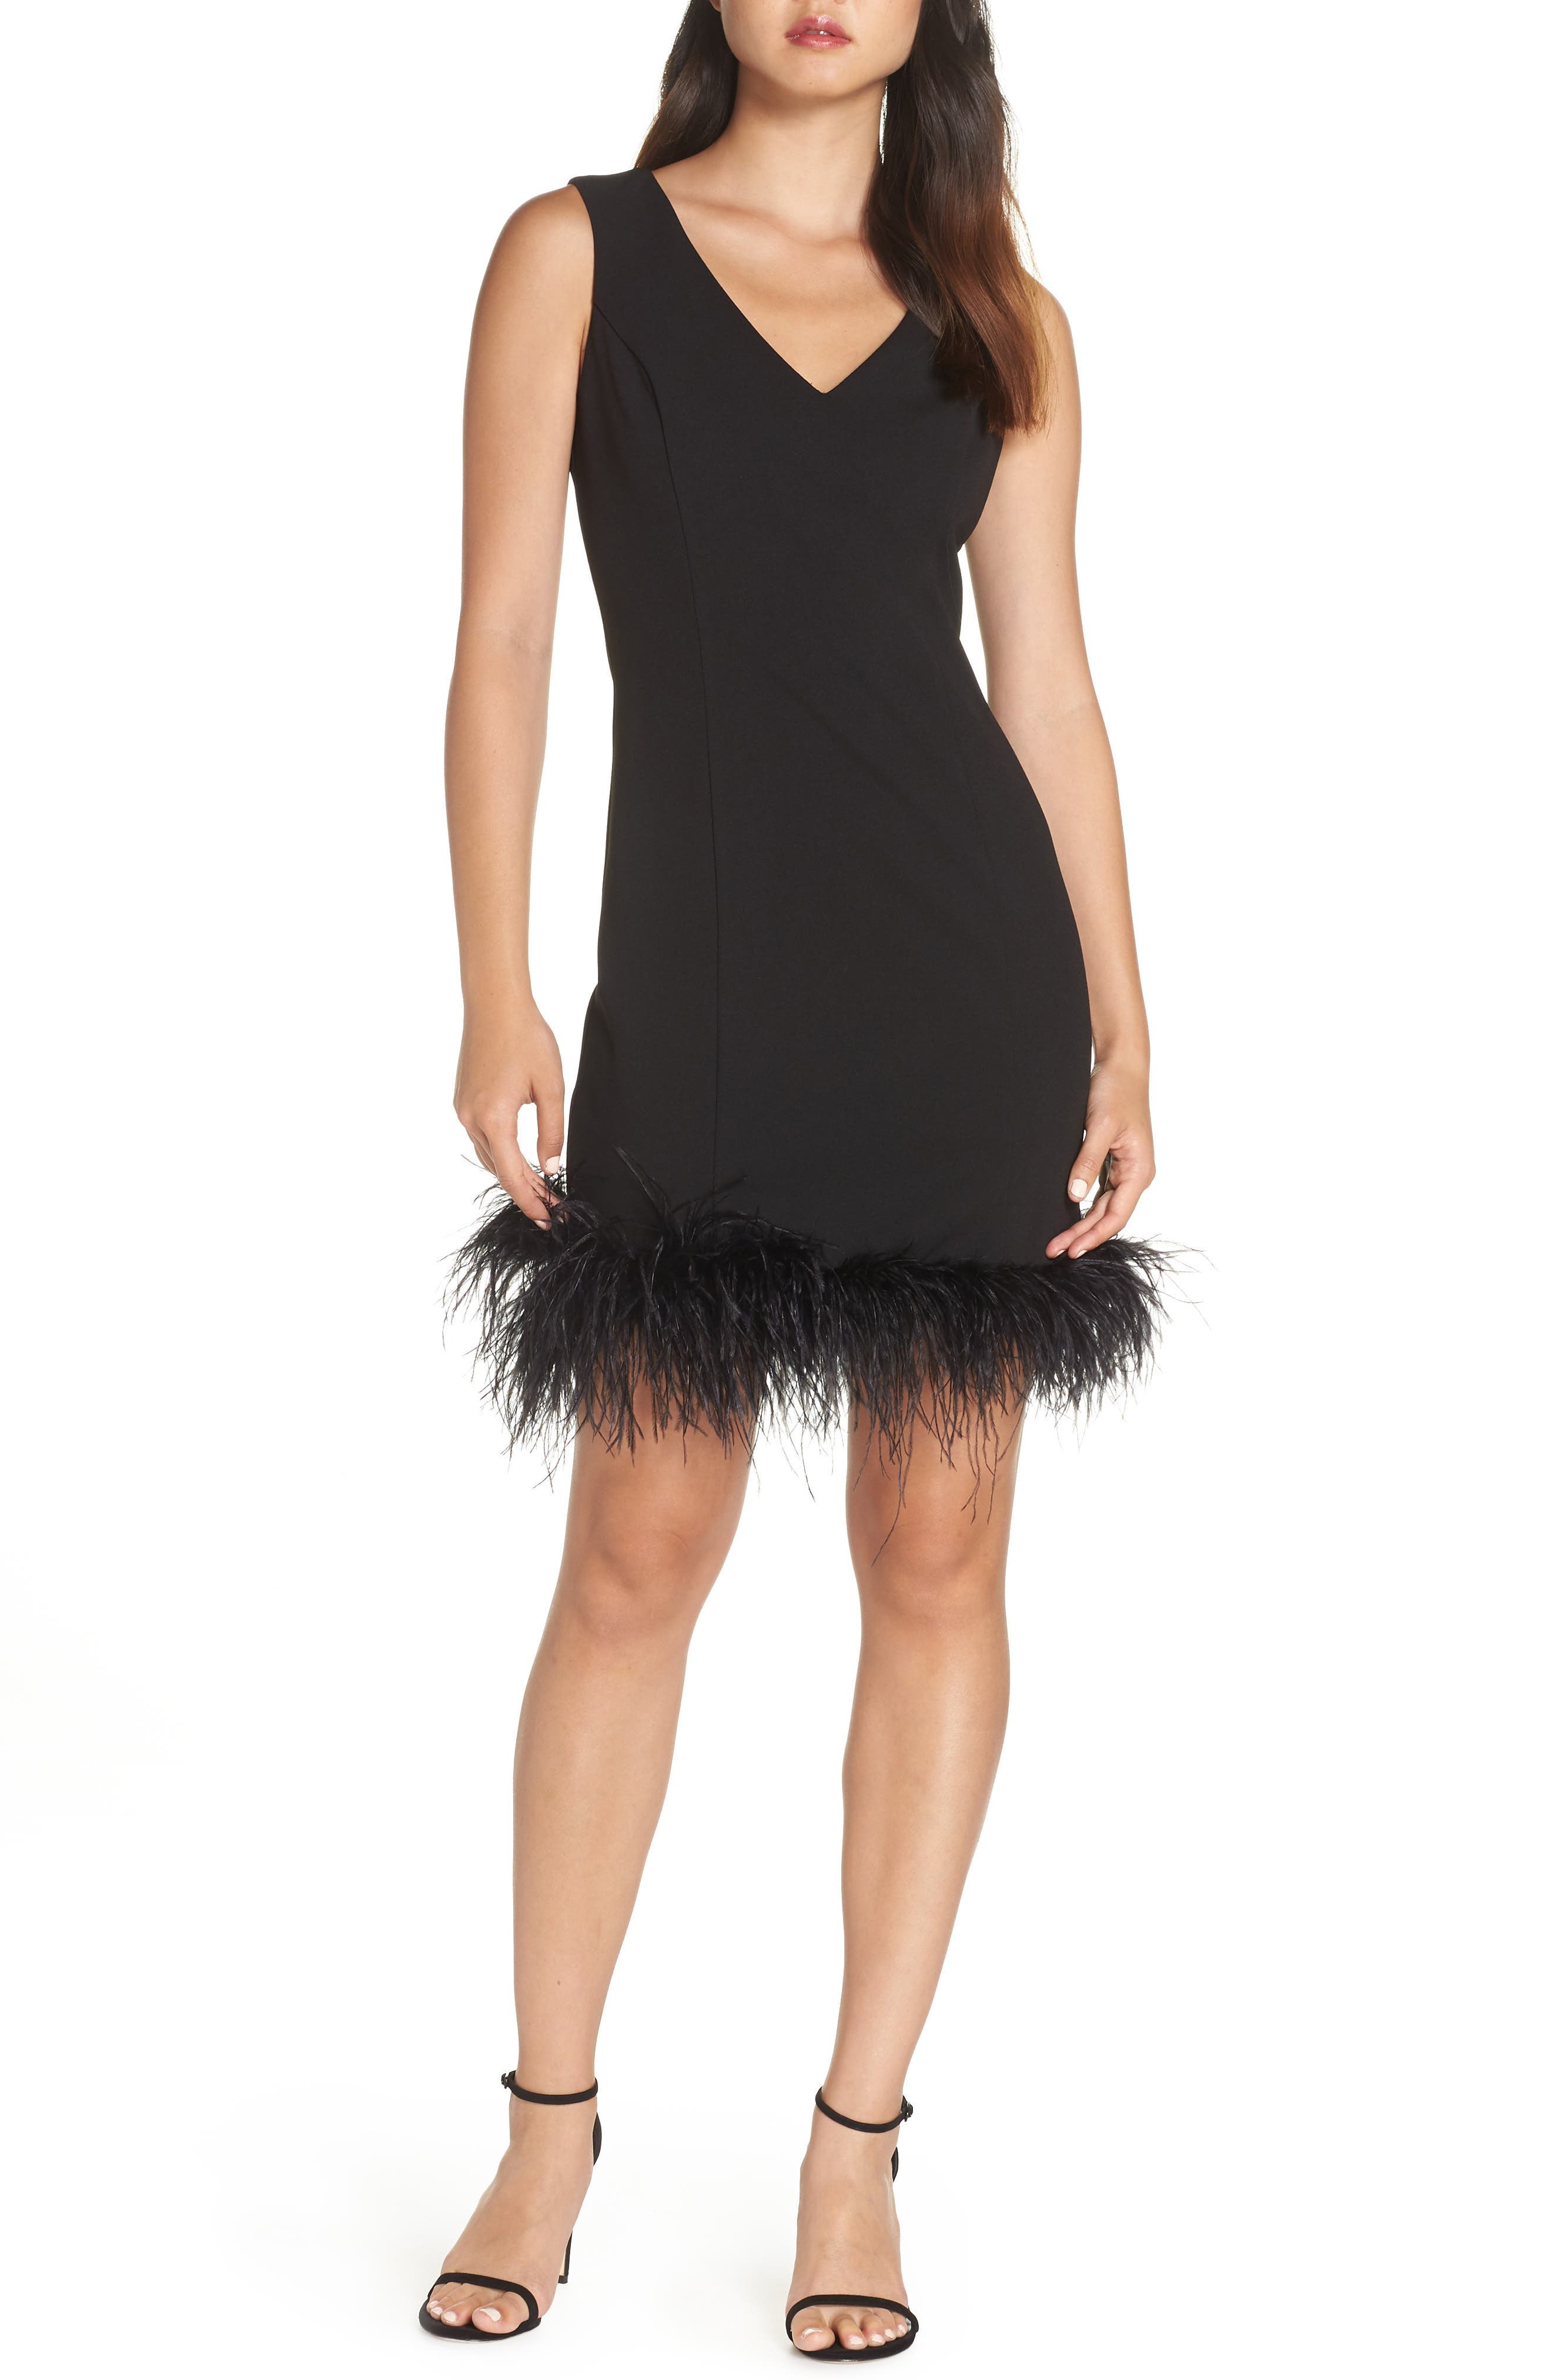 Feather-Trimmed Dress - 100% Exclusive in Black